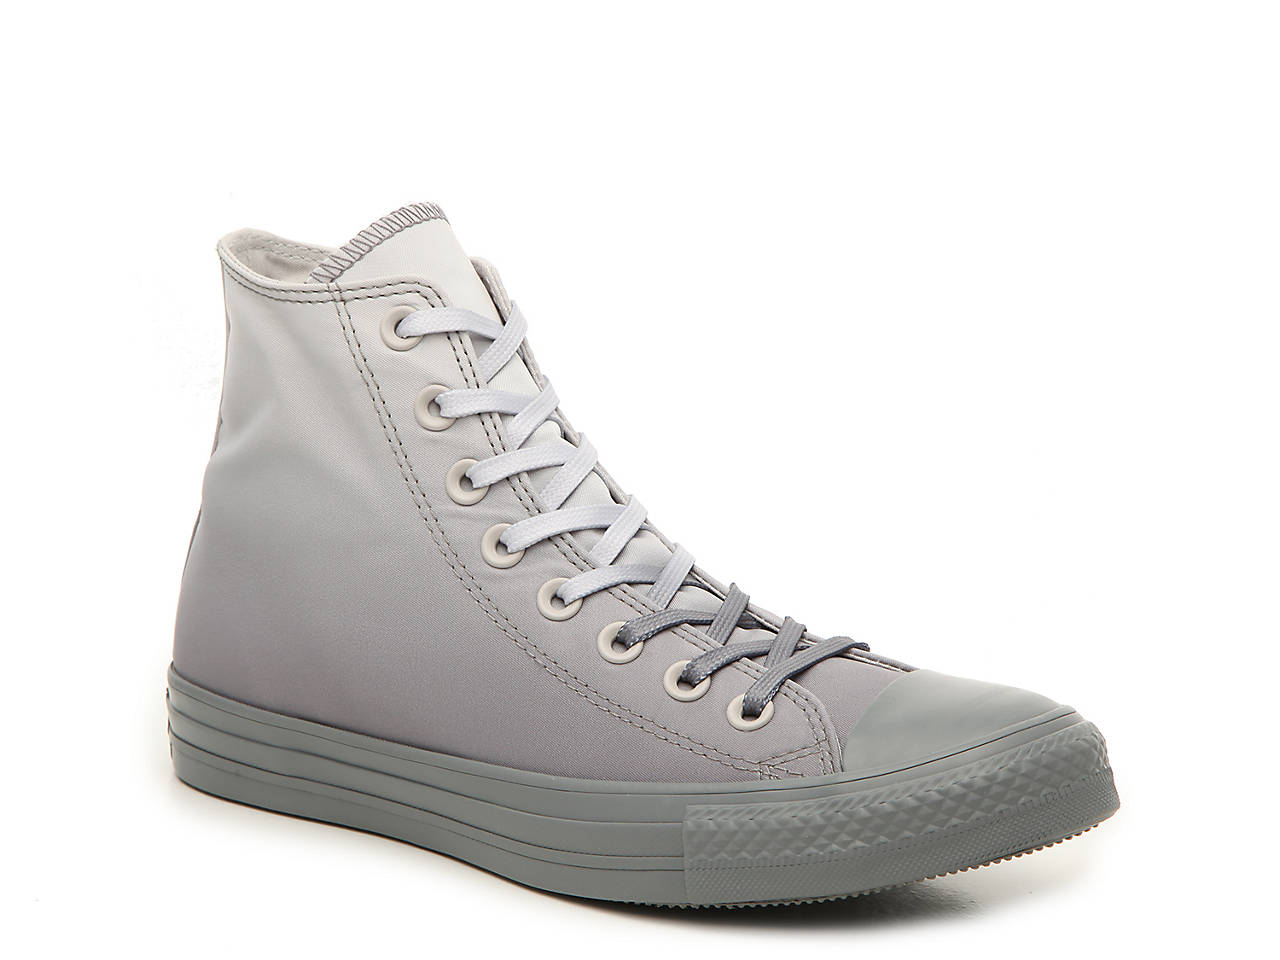 2a93b1a68473 Converse Chuck Taylor All Star Dip Dye High-Top Sneaker - Women s ...